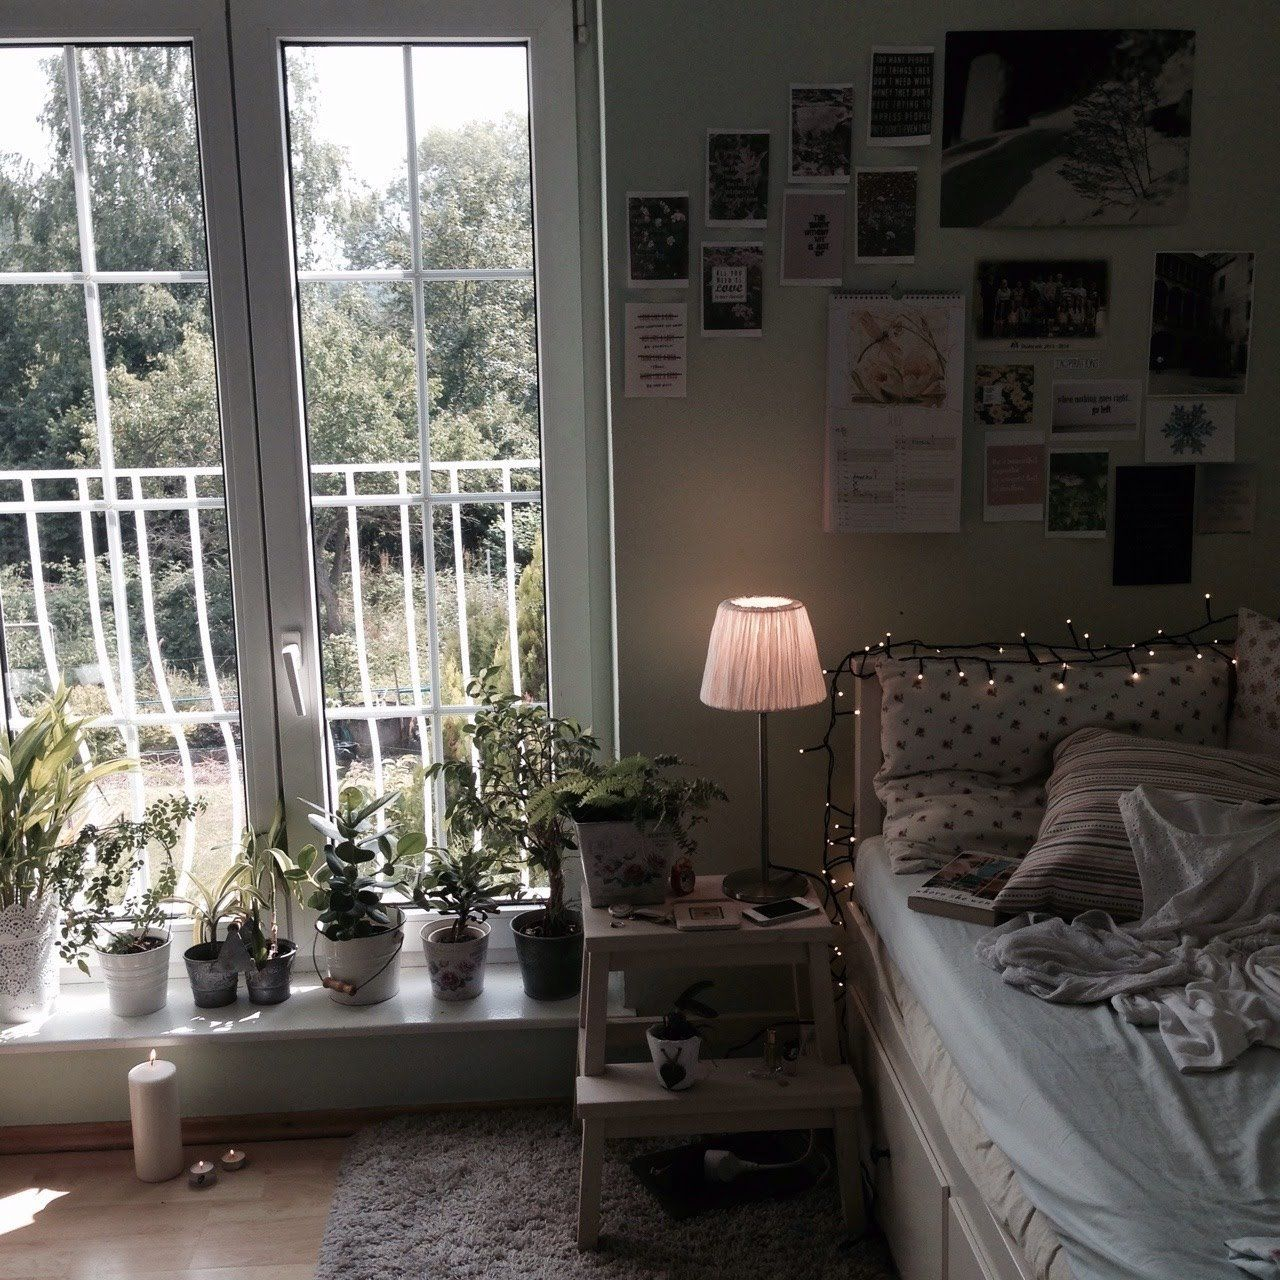 tumblr rooms u2014 u201cMy little vintage bedroom